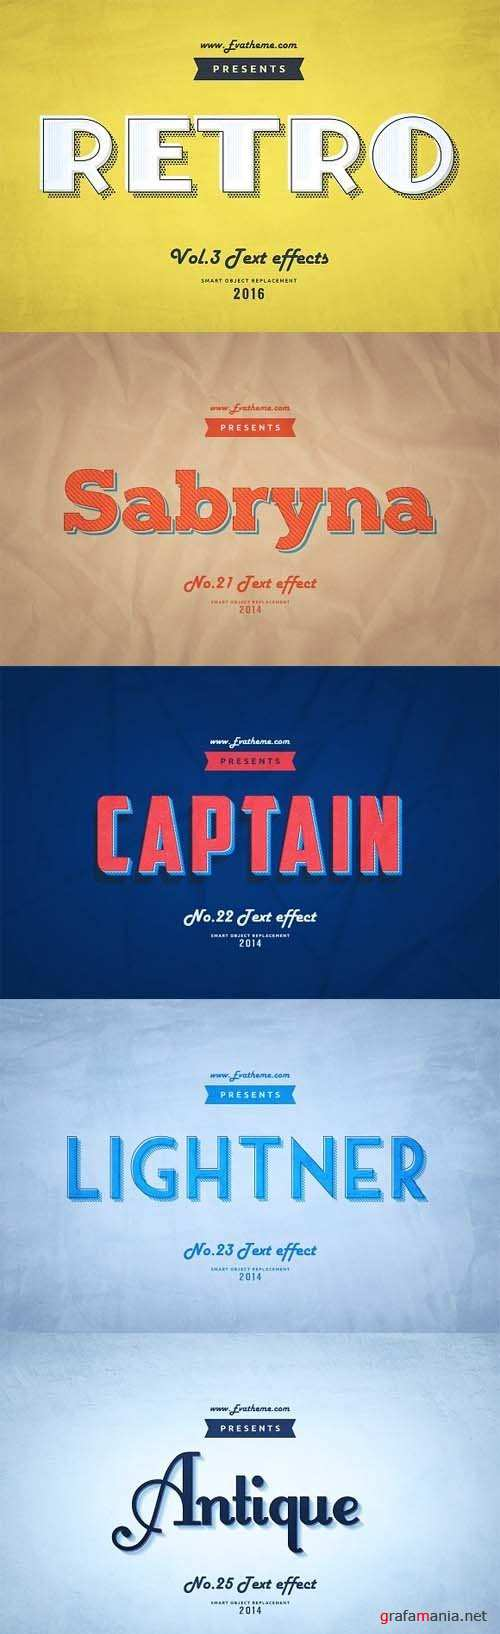 Retro Style Text Effects Vol.3 - 1214556